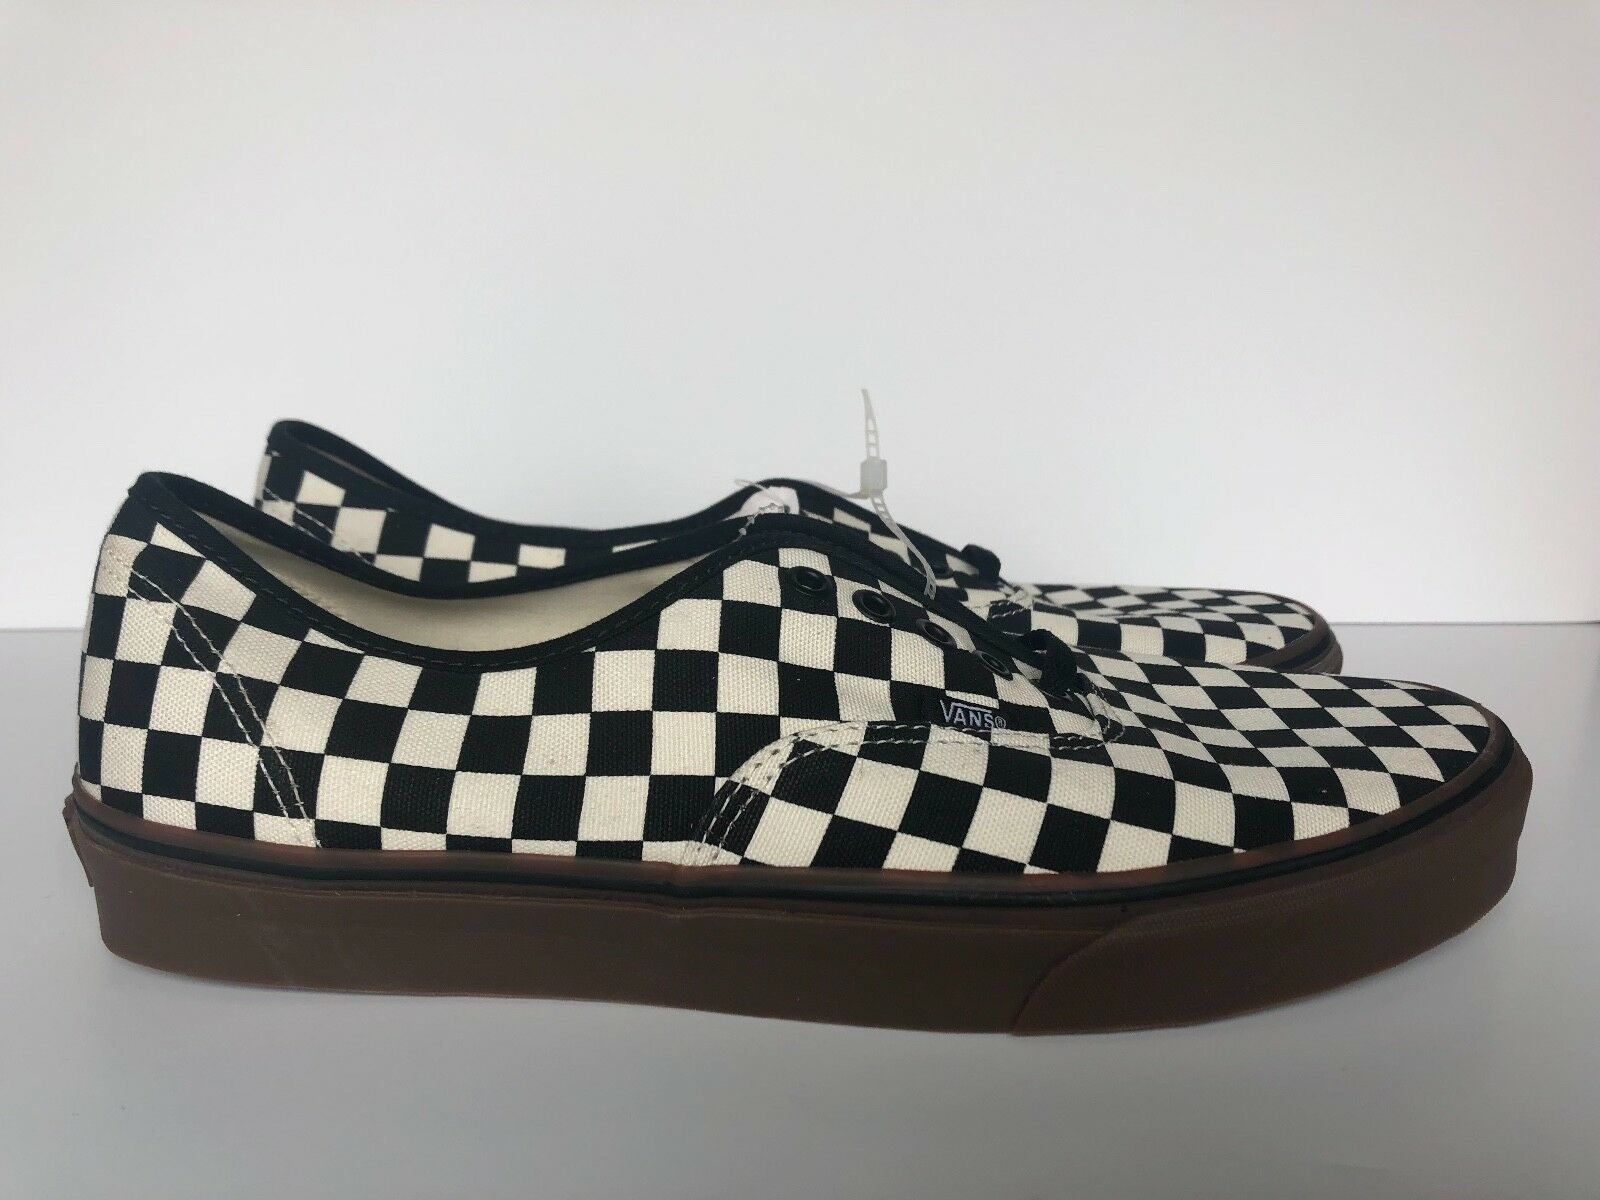 Vans Authentic Classic Checker Gum Sole White Black Size-13 NO SHOEBOX NEW!!